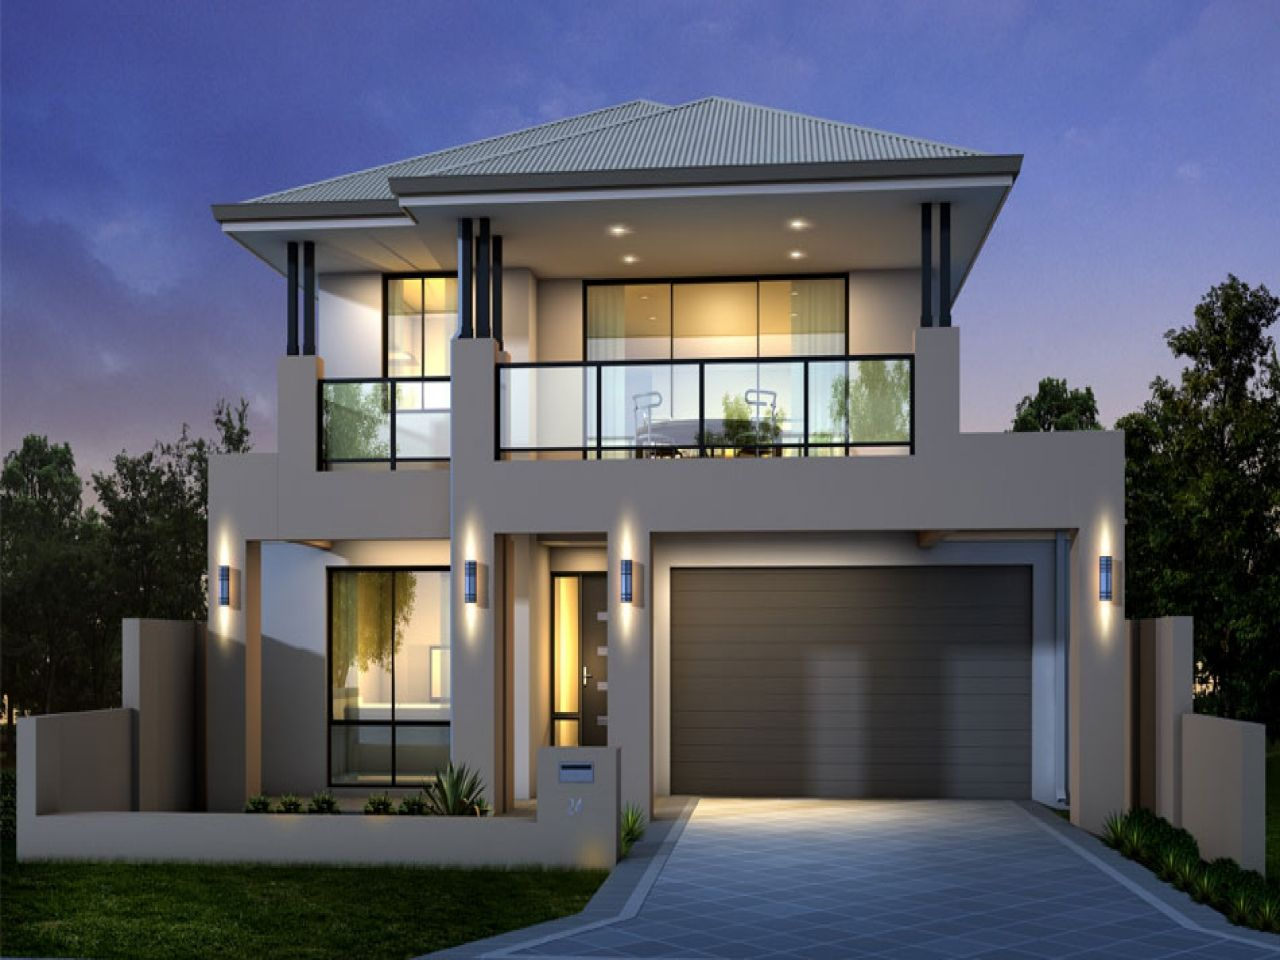 Modern two story house designs philippines Home